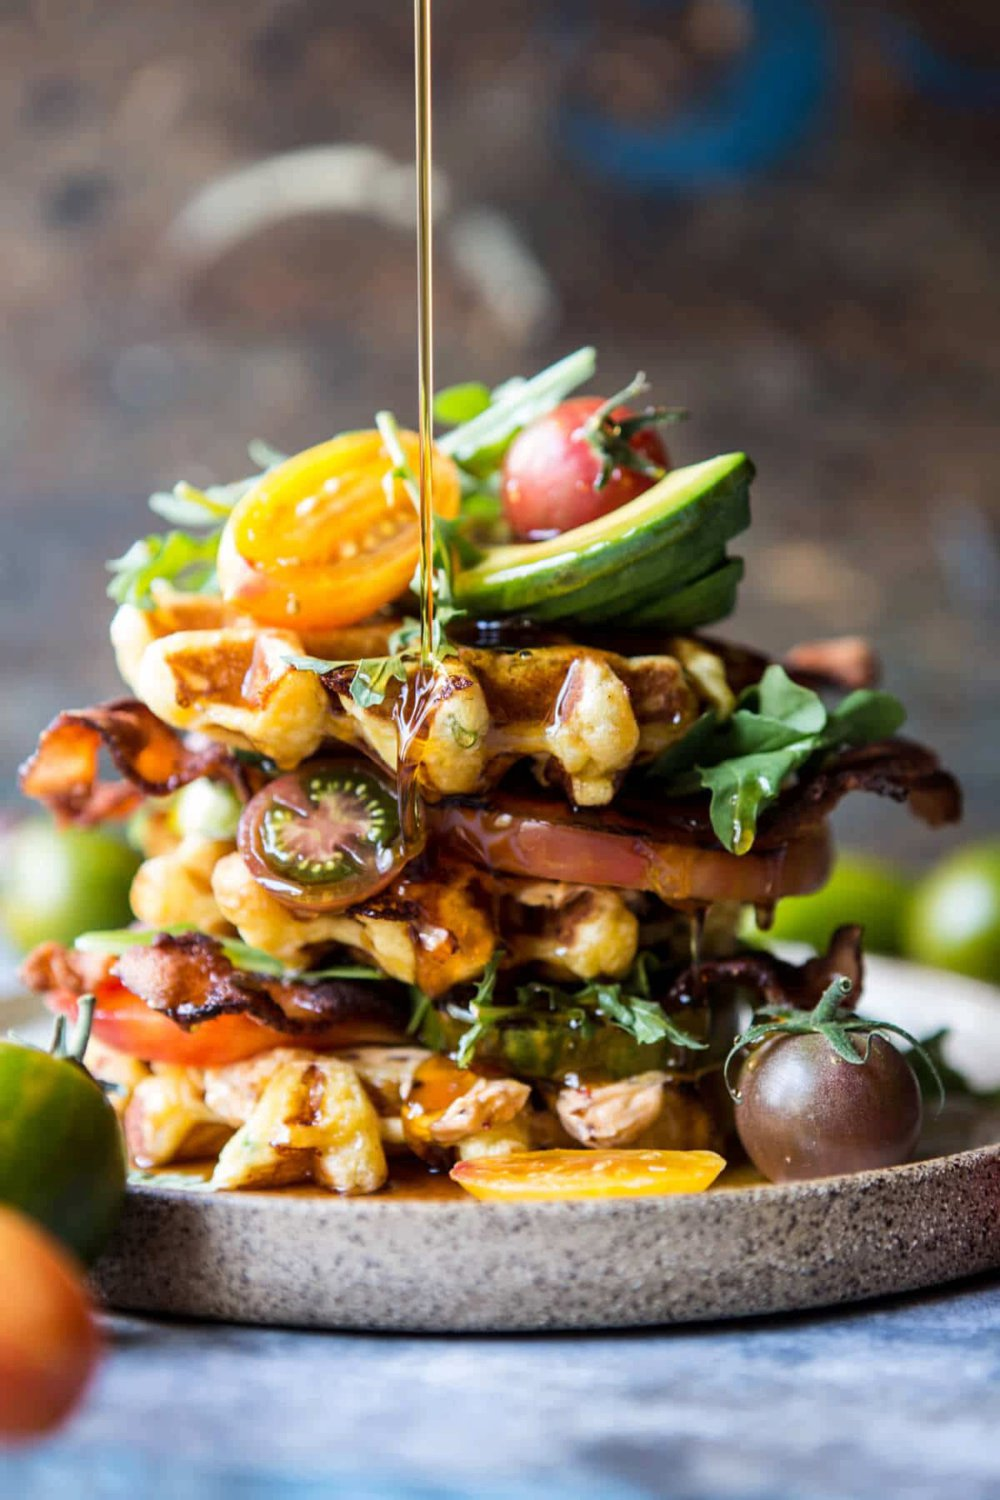 Cheddar Cornbread Waffle BLT with Chipotle Butter